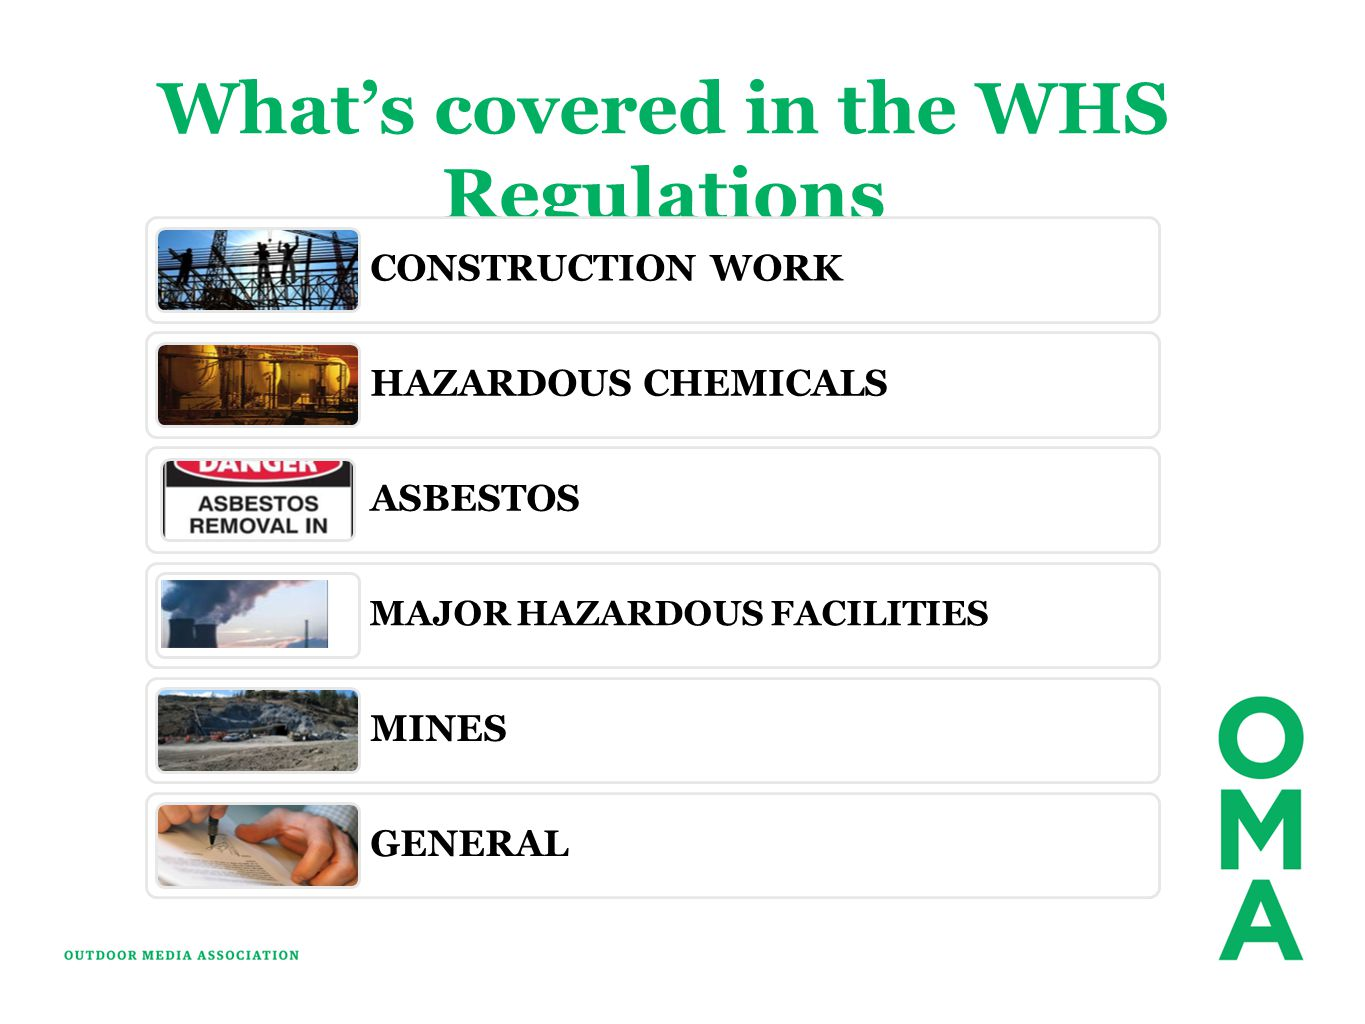 What's covered in the WHS Regulations